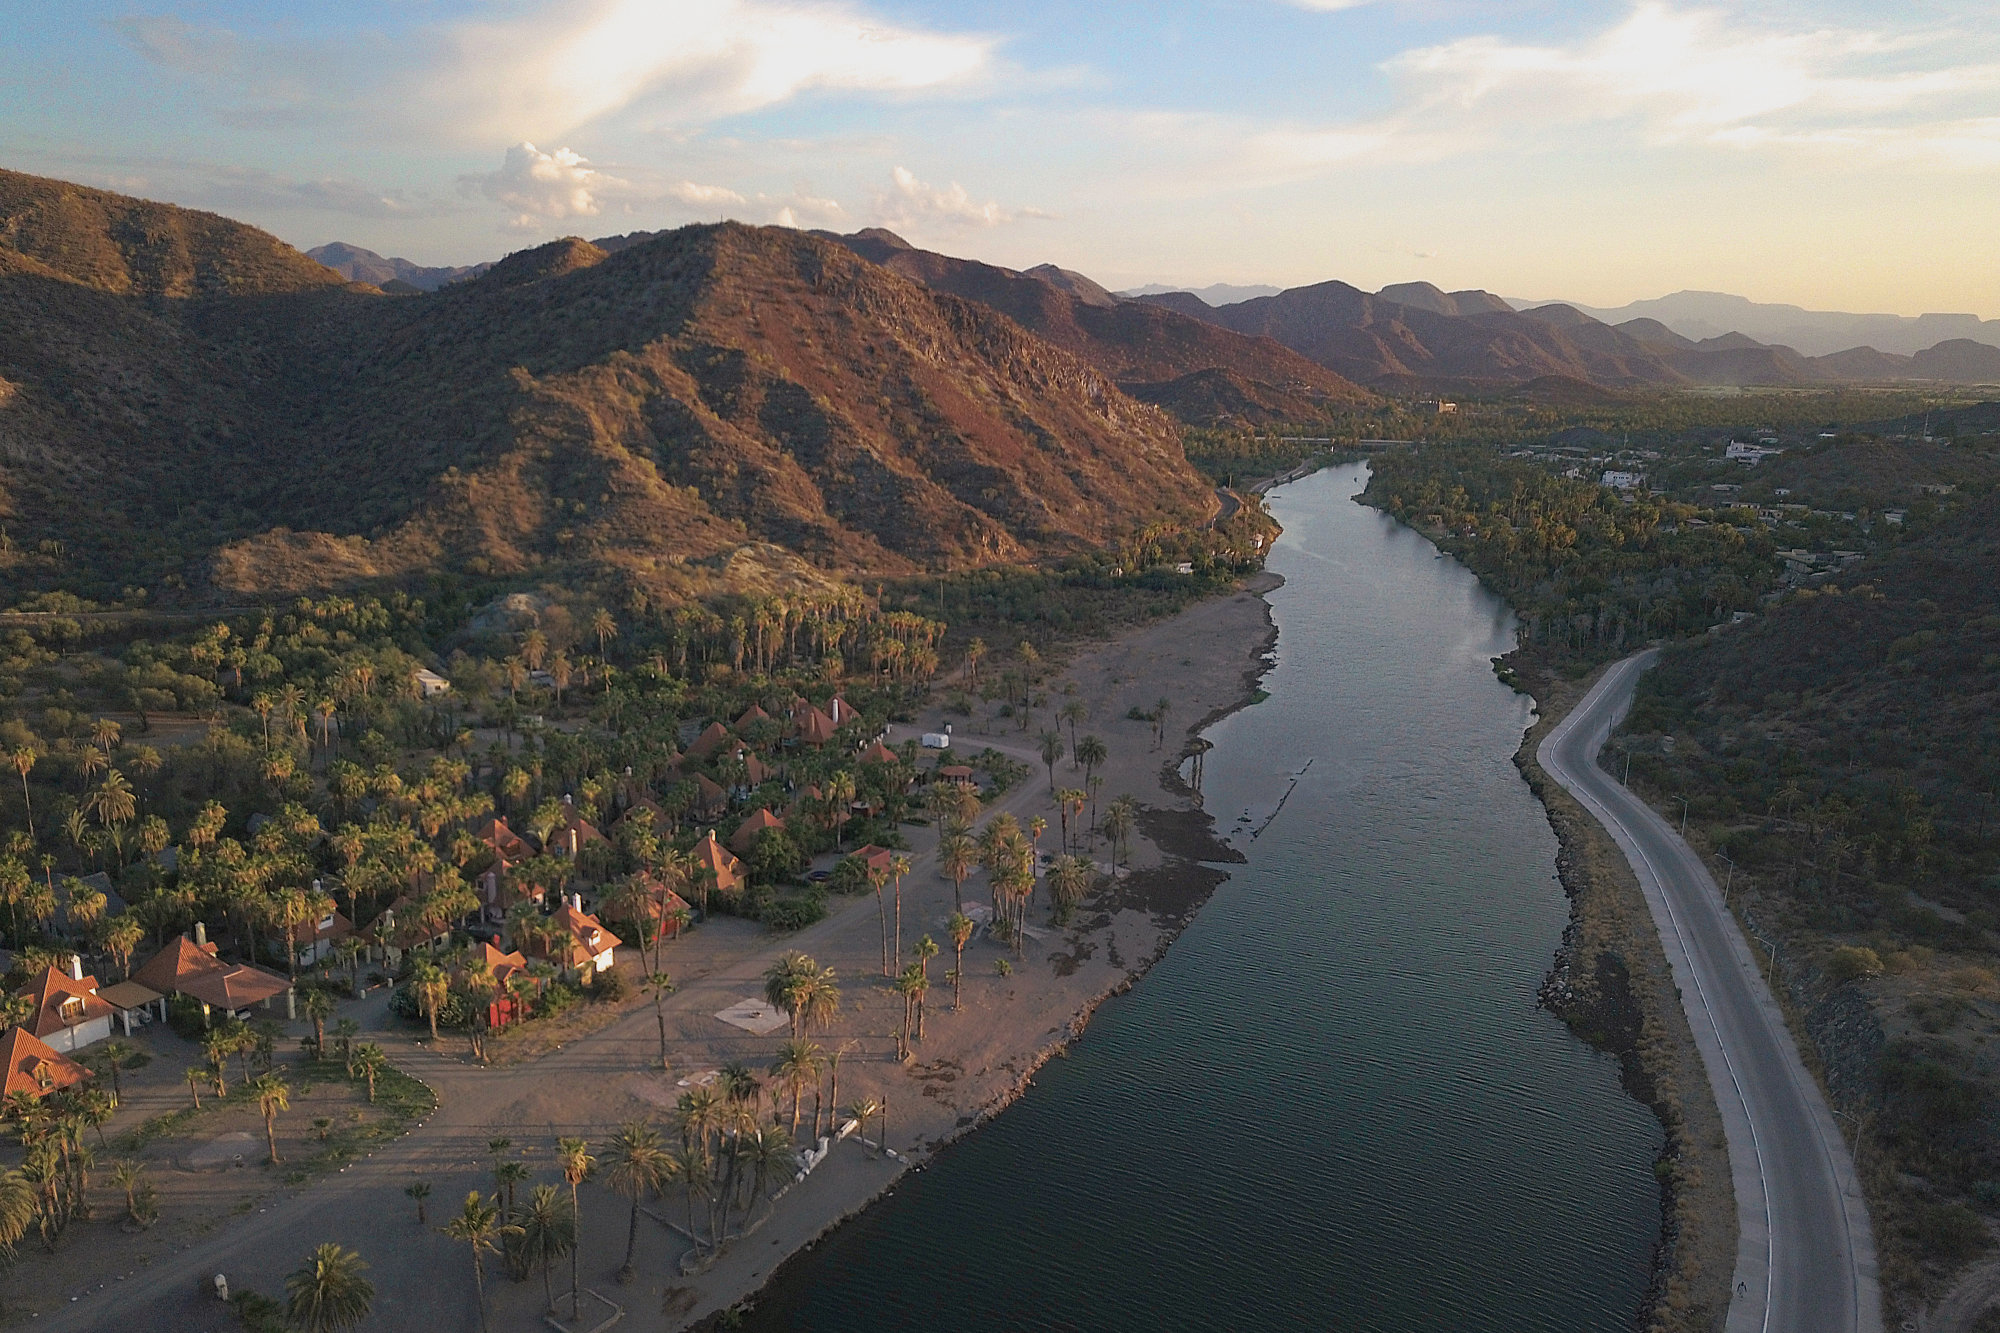 mulege, baja california, mexico